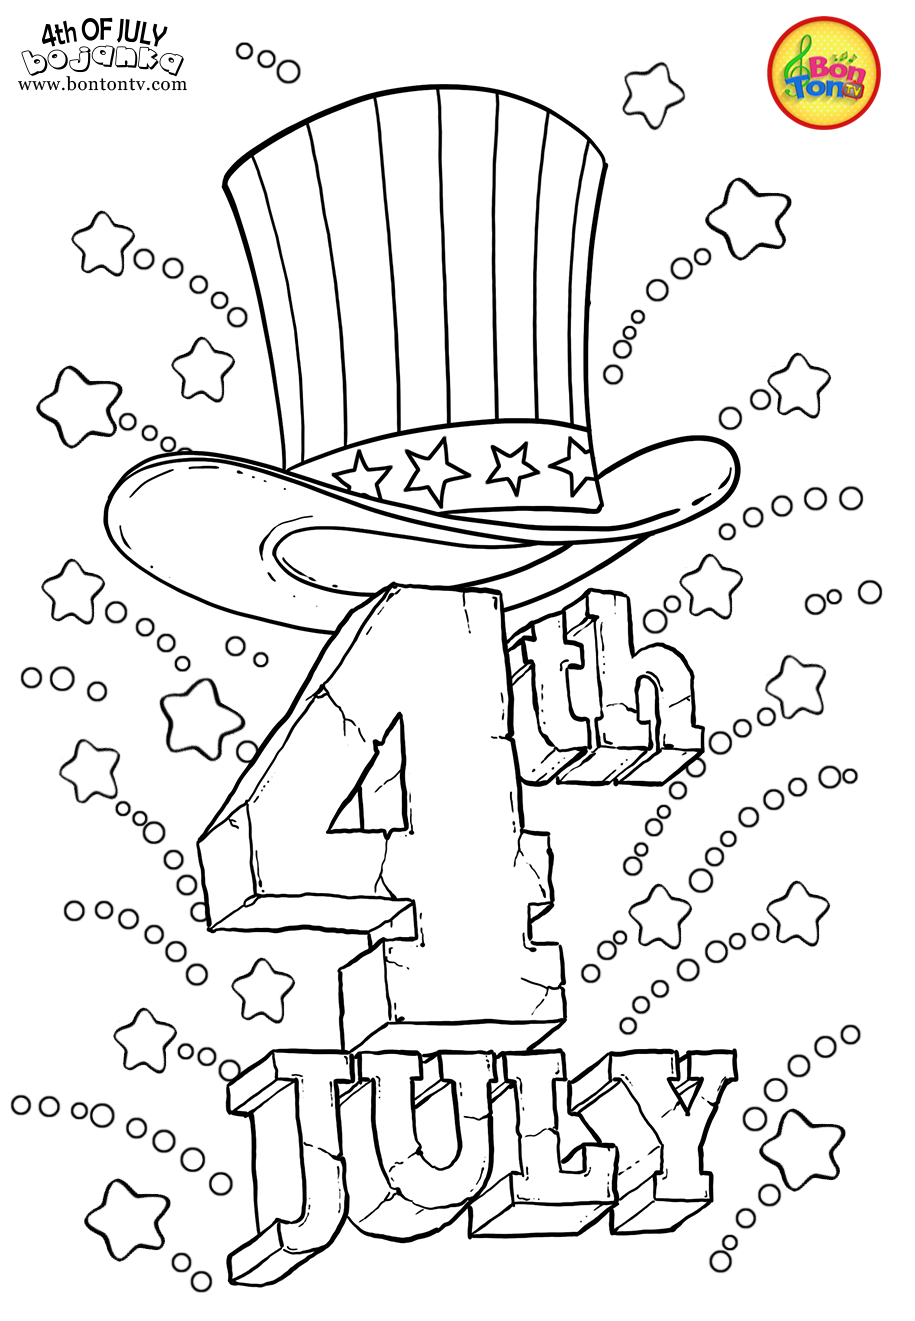 Independence Day Fourth Of July July 4th 4th Of July Usa America Free Printable Coloring Summer Coloring Pages Free Printable Coloring Pages July Colors [ 1321 x 915 Pixel ]